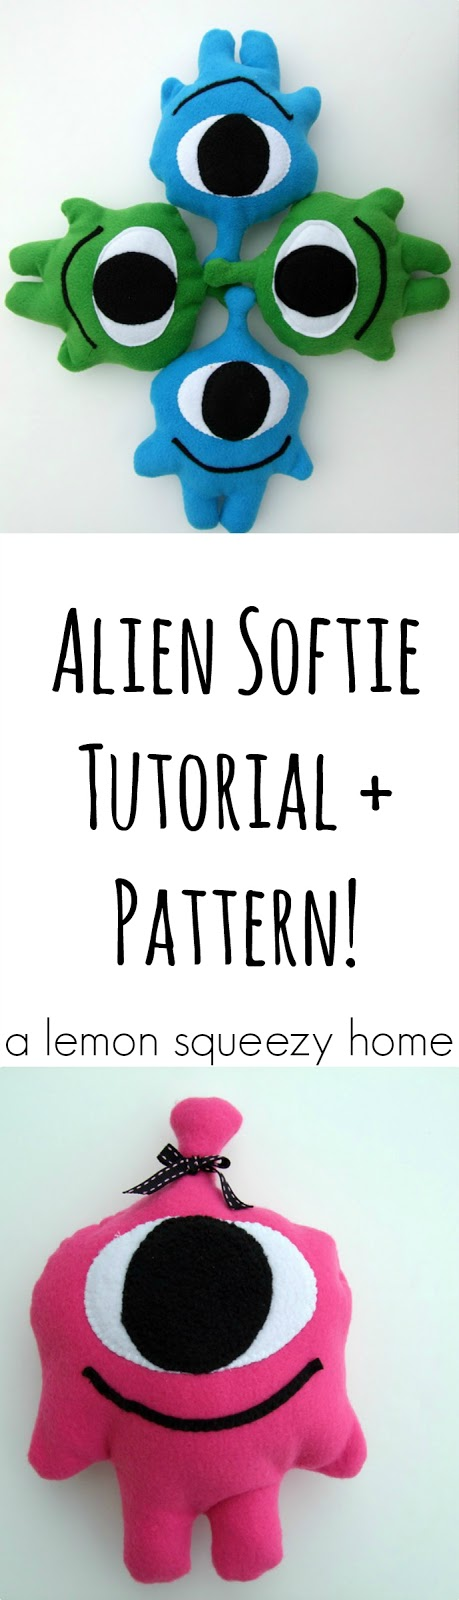 Alien Softie Tutorial + Pattern // a lemon squeezy home